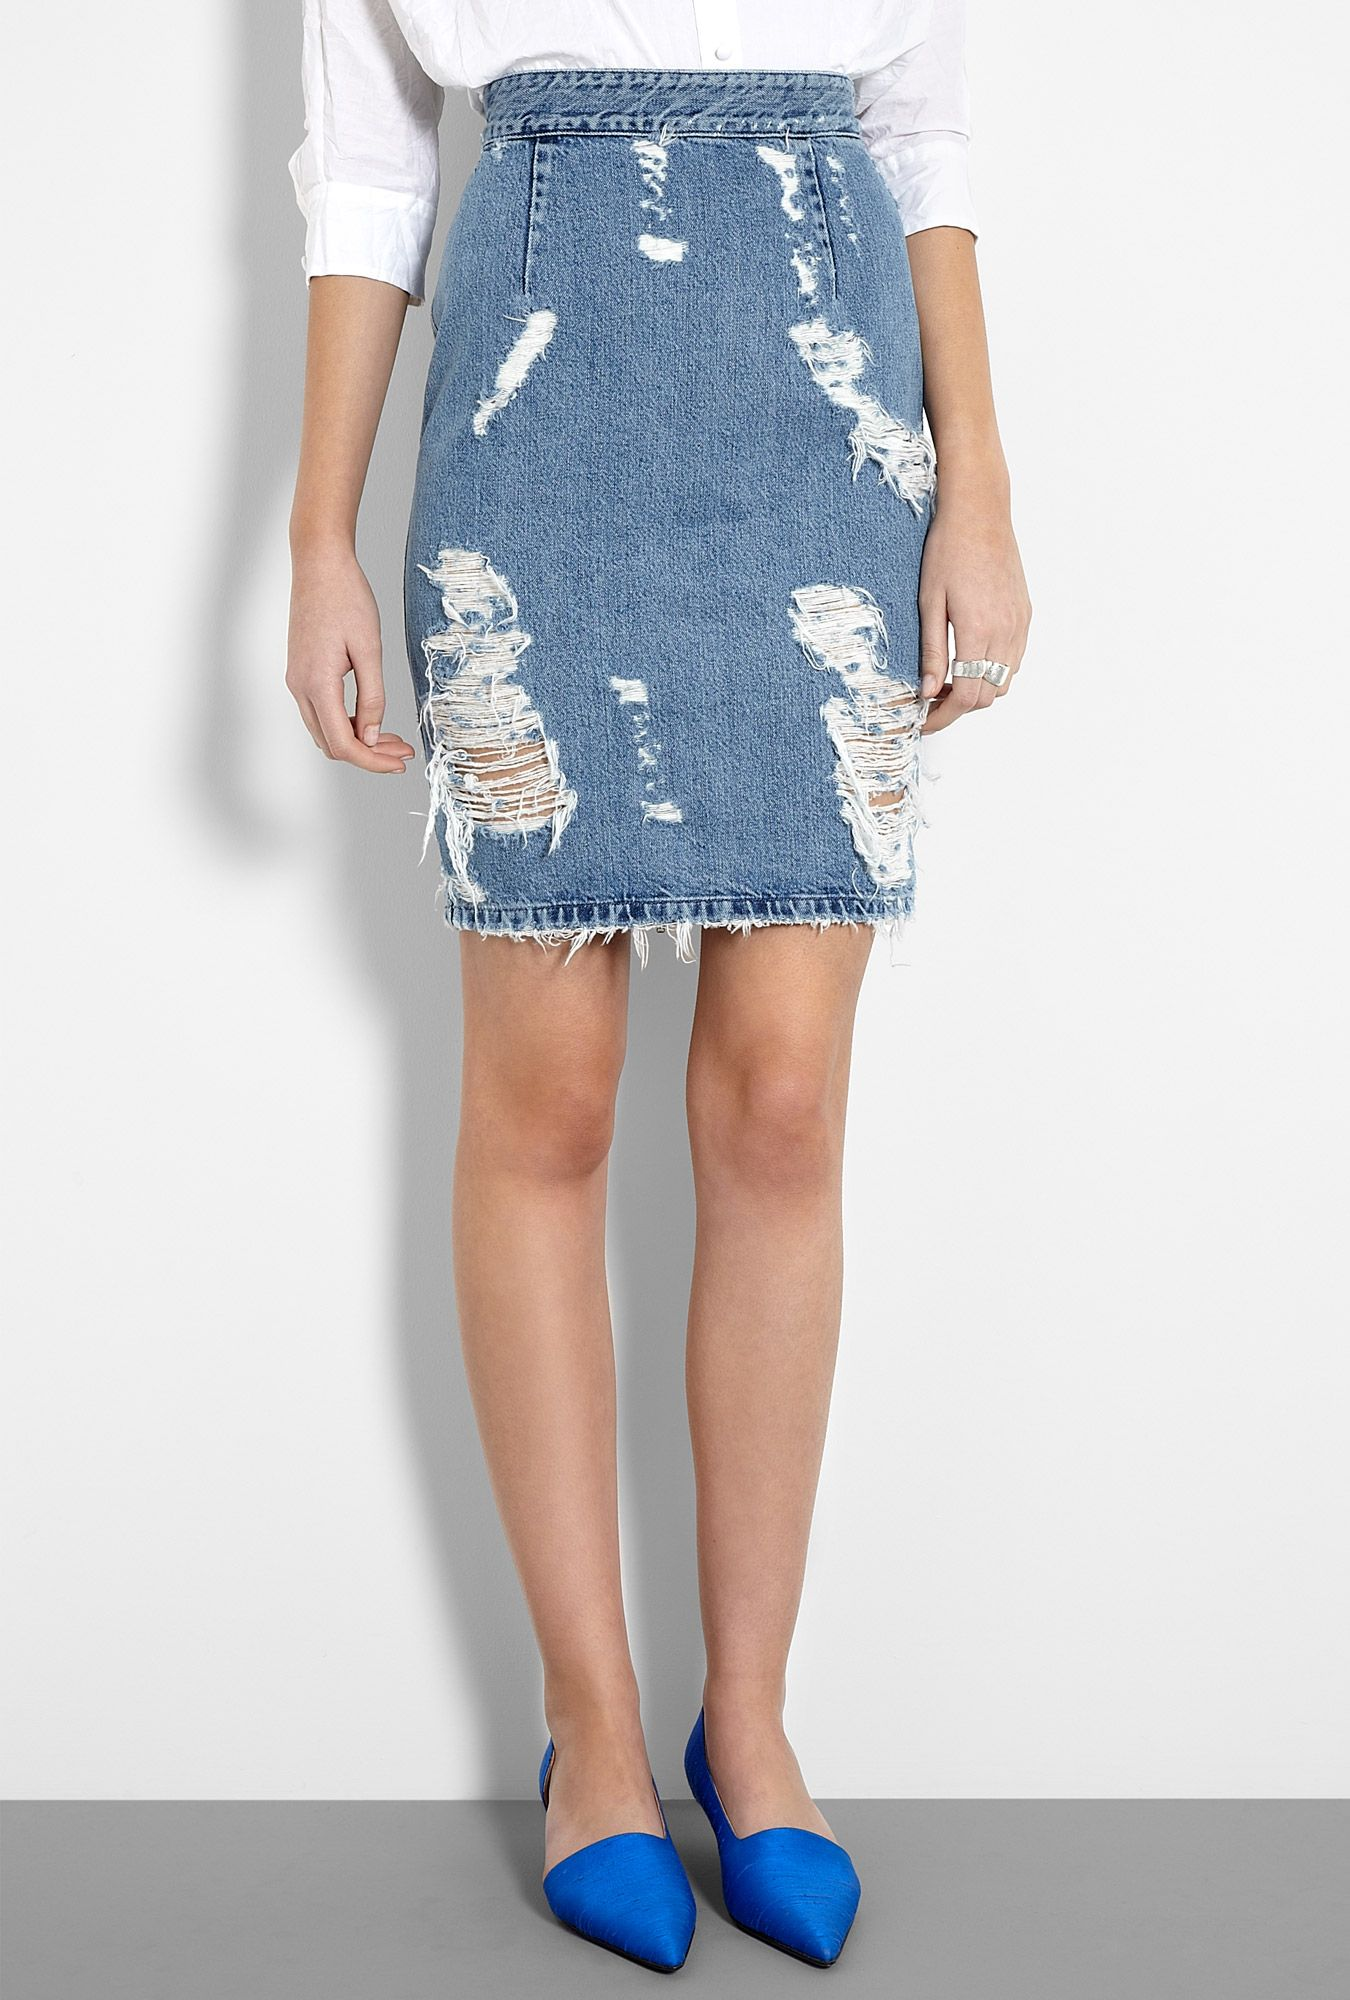 Acne SS12: Trashed Denim Zip Back Pencil Skirt | Jag vill ju va ...